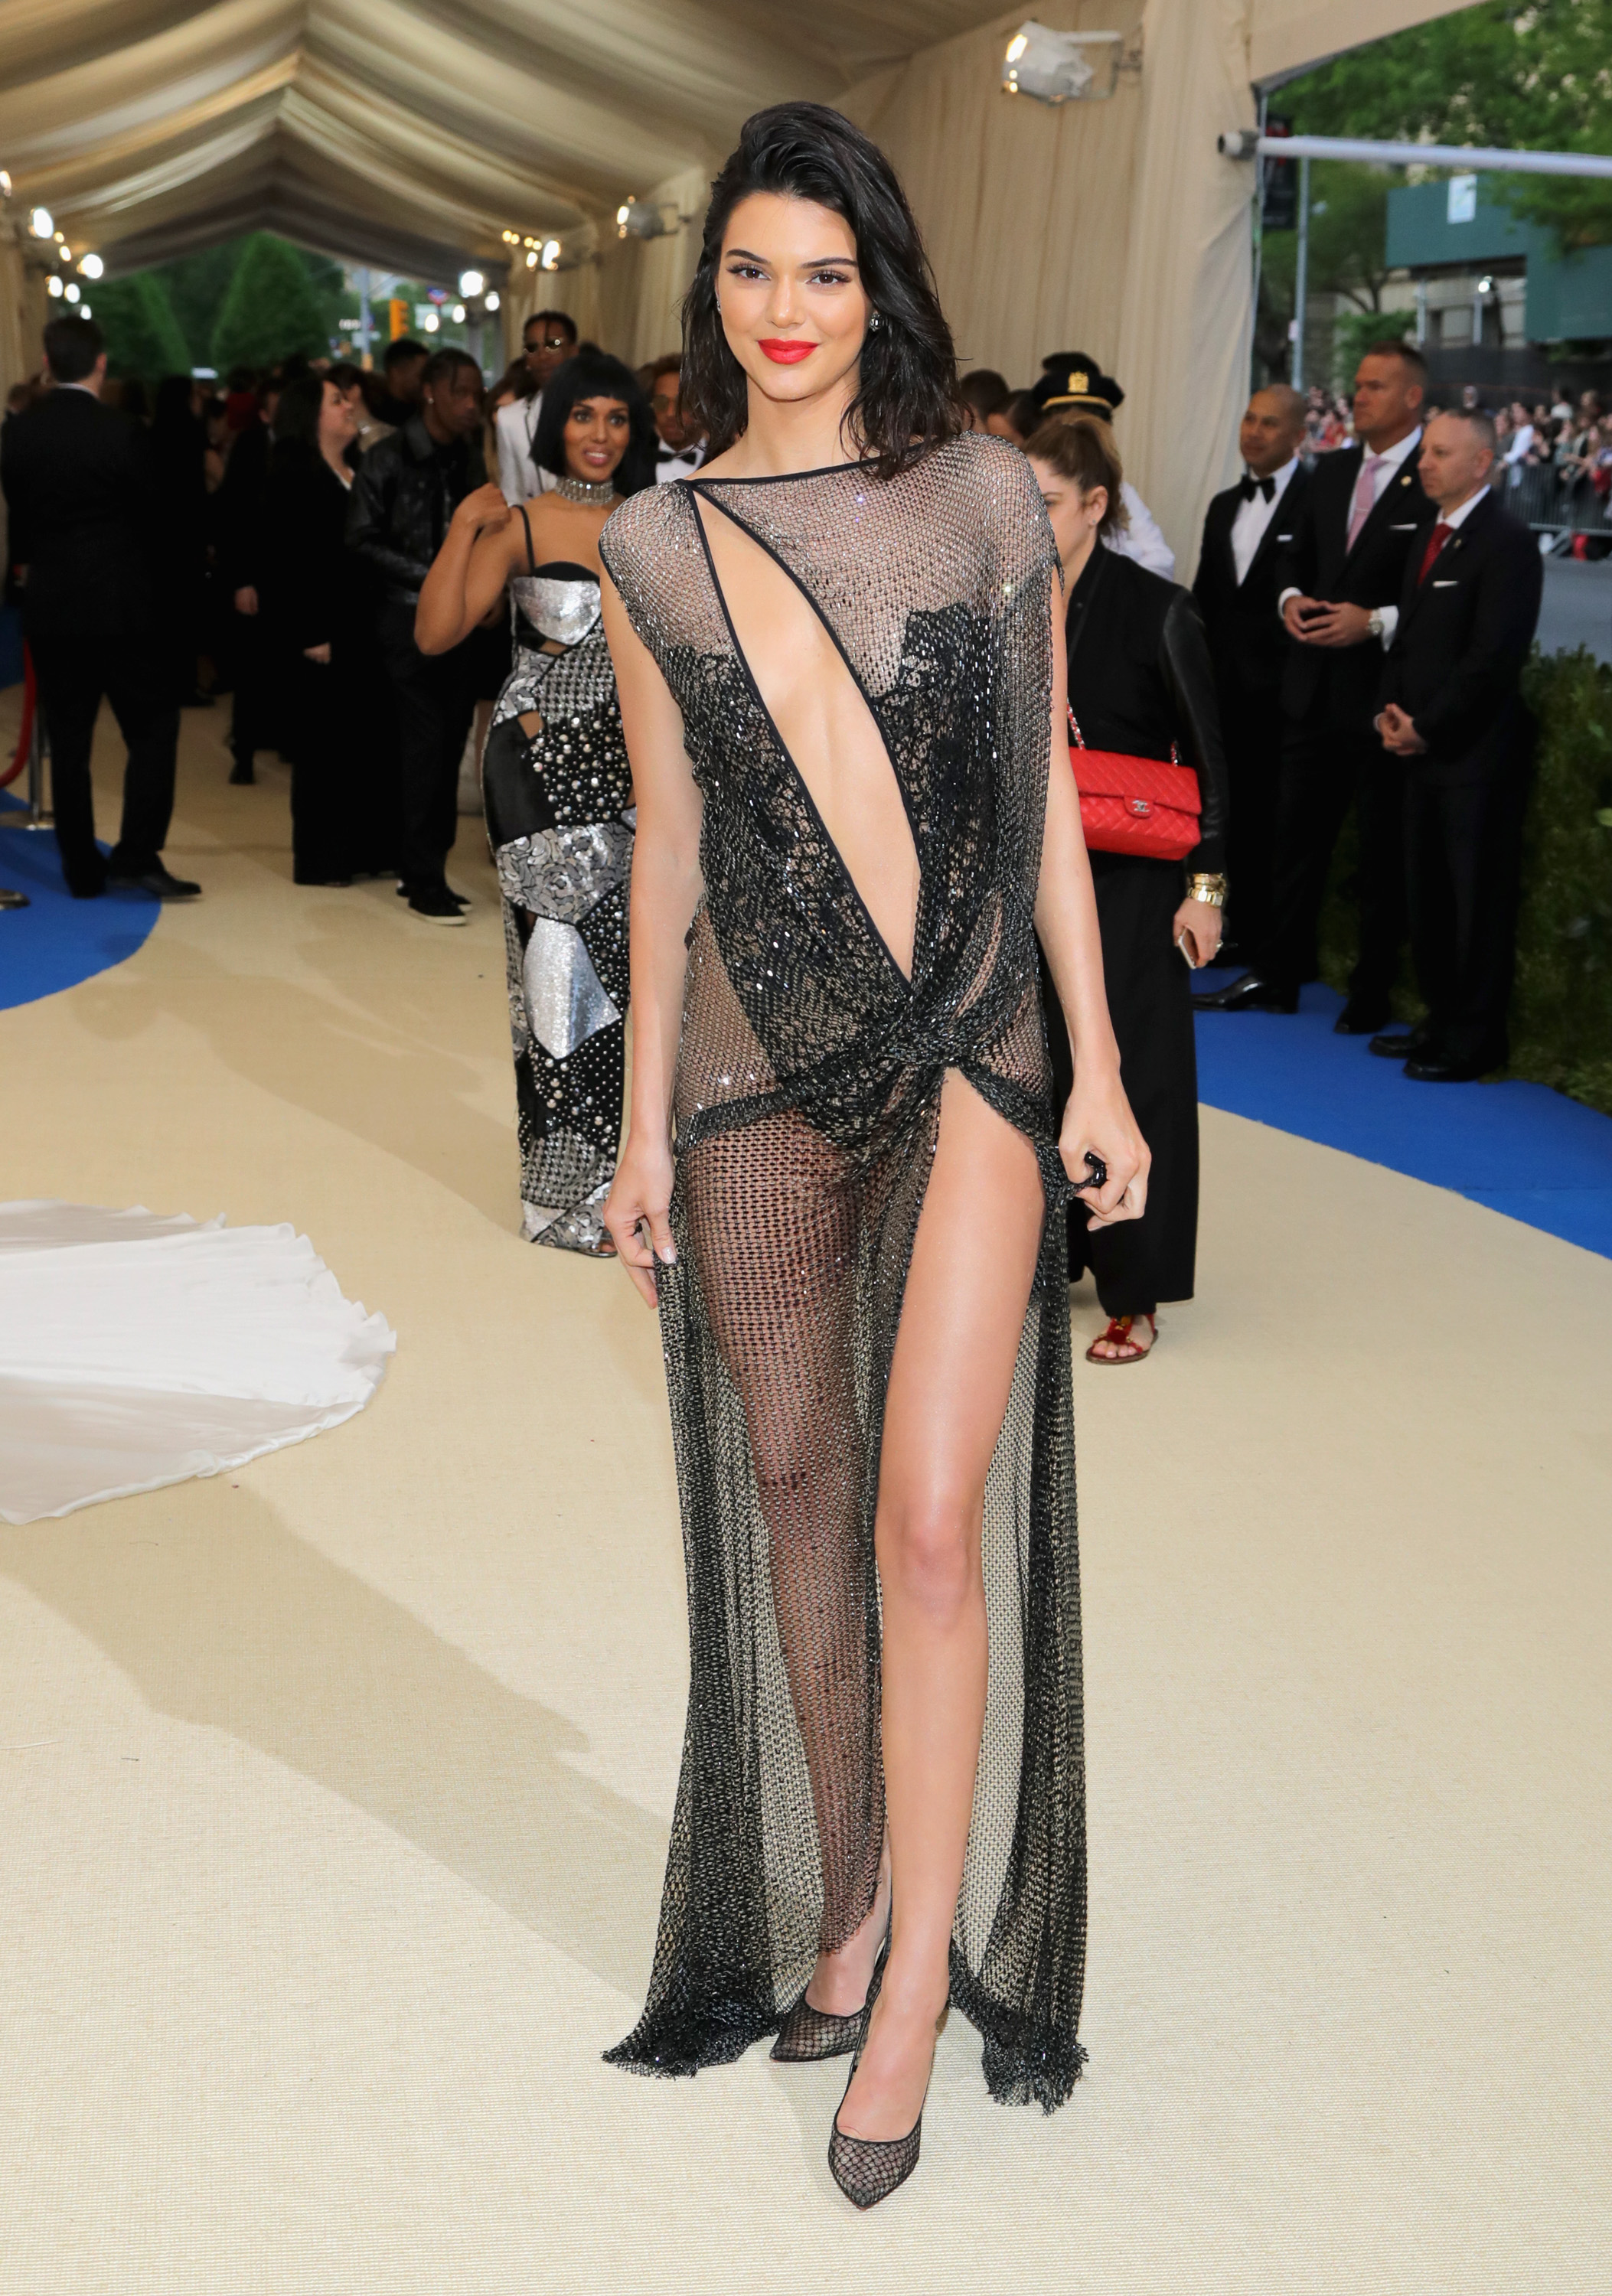 <p>It's the fashion event of the year and the Met Gala 2017 did not disappoint - not by a long shot. There were style moments aplenty, with avant garde outfits (come on down Kendall Jenner) dominating the red carpet. </p> <p>Here, a quick round up of those who absolutely slayed - and also those who missed the mark, if only by a little. Let's get the style party started with Kendall in La Perla. A miss. Yes, she has the most phenomenal figure - no, we don't need to see every inch of it.</p>